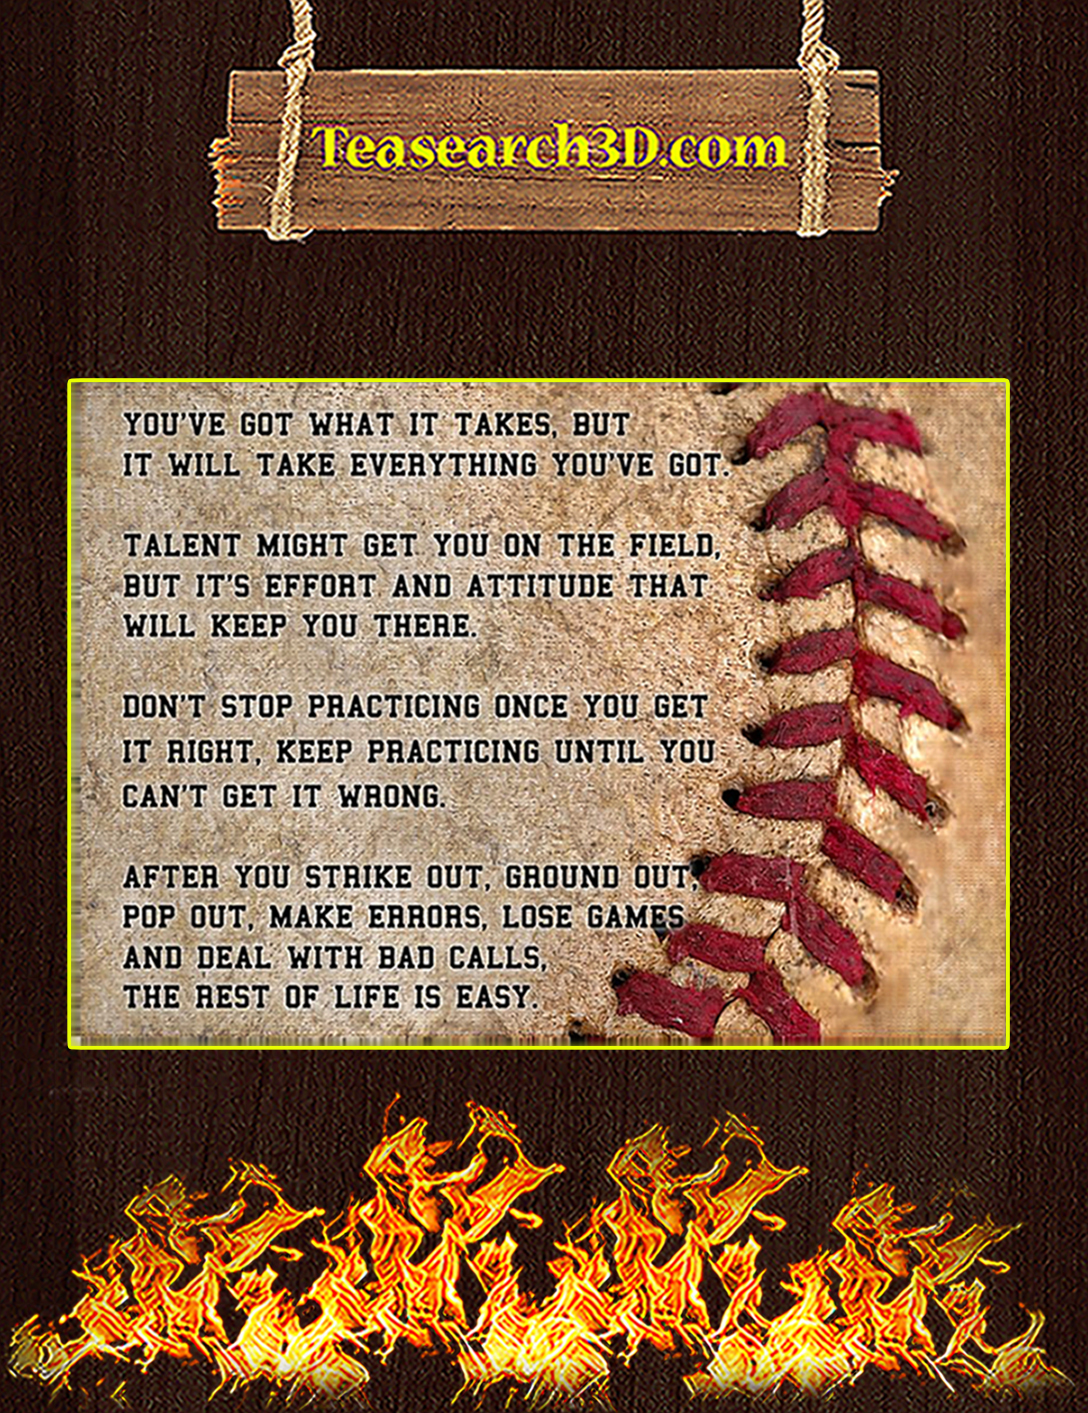 Baseball motivation you got what it takes poster A2